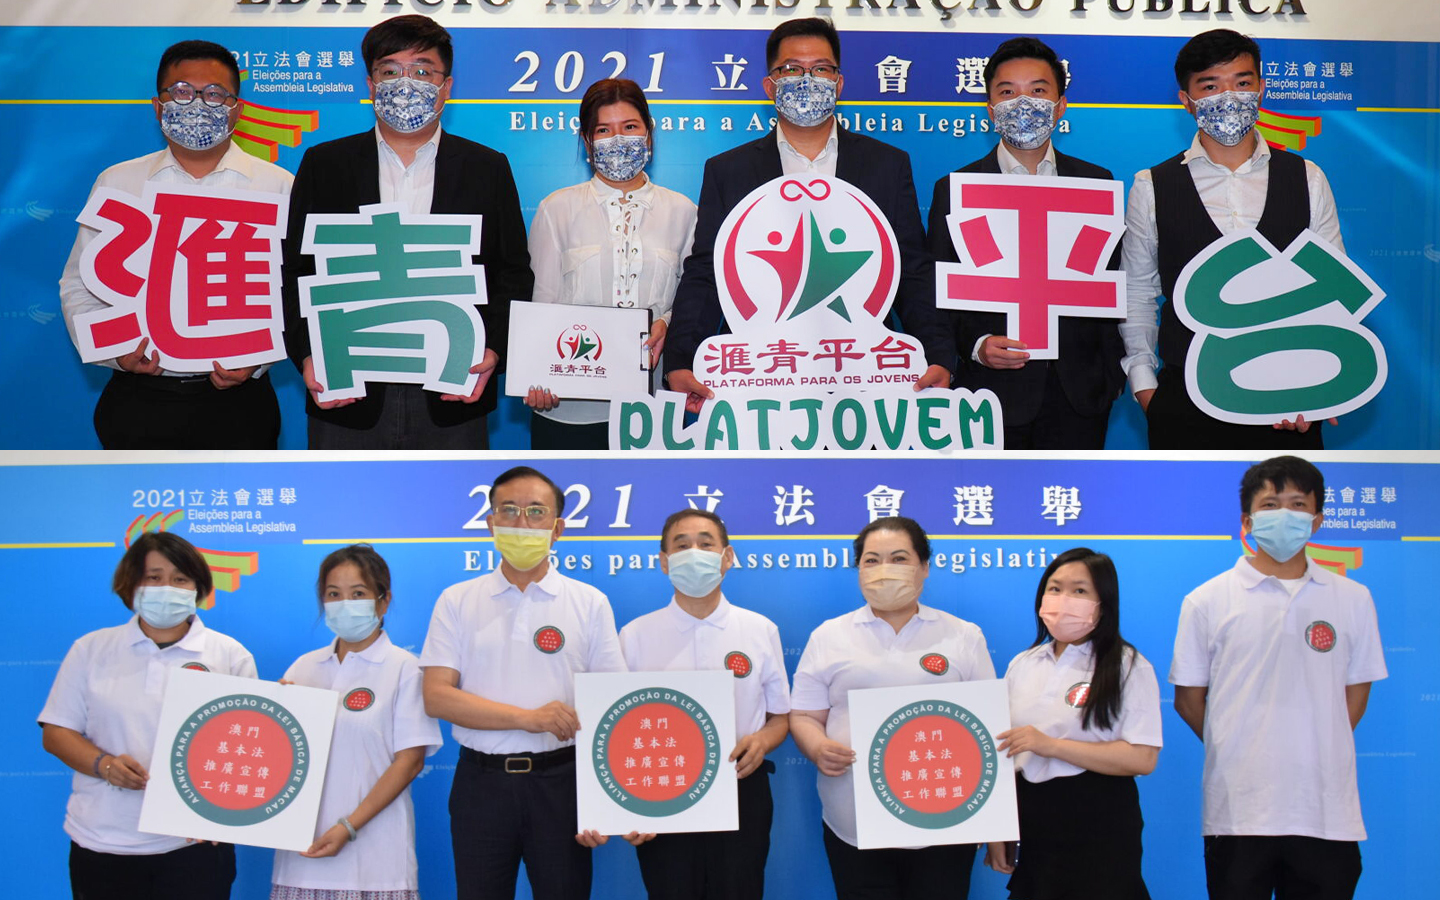 Platform for Youngsters and Macao Basic Law Promotion Alliance